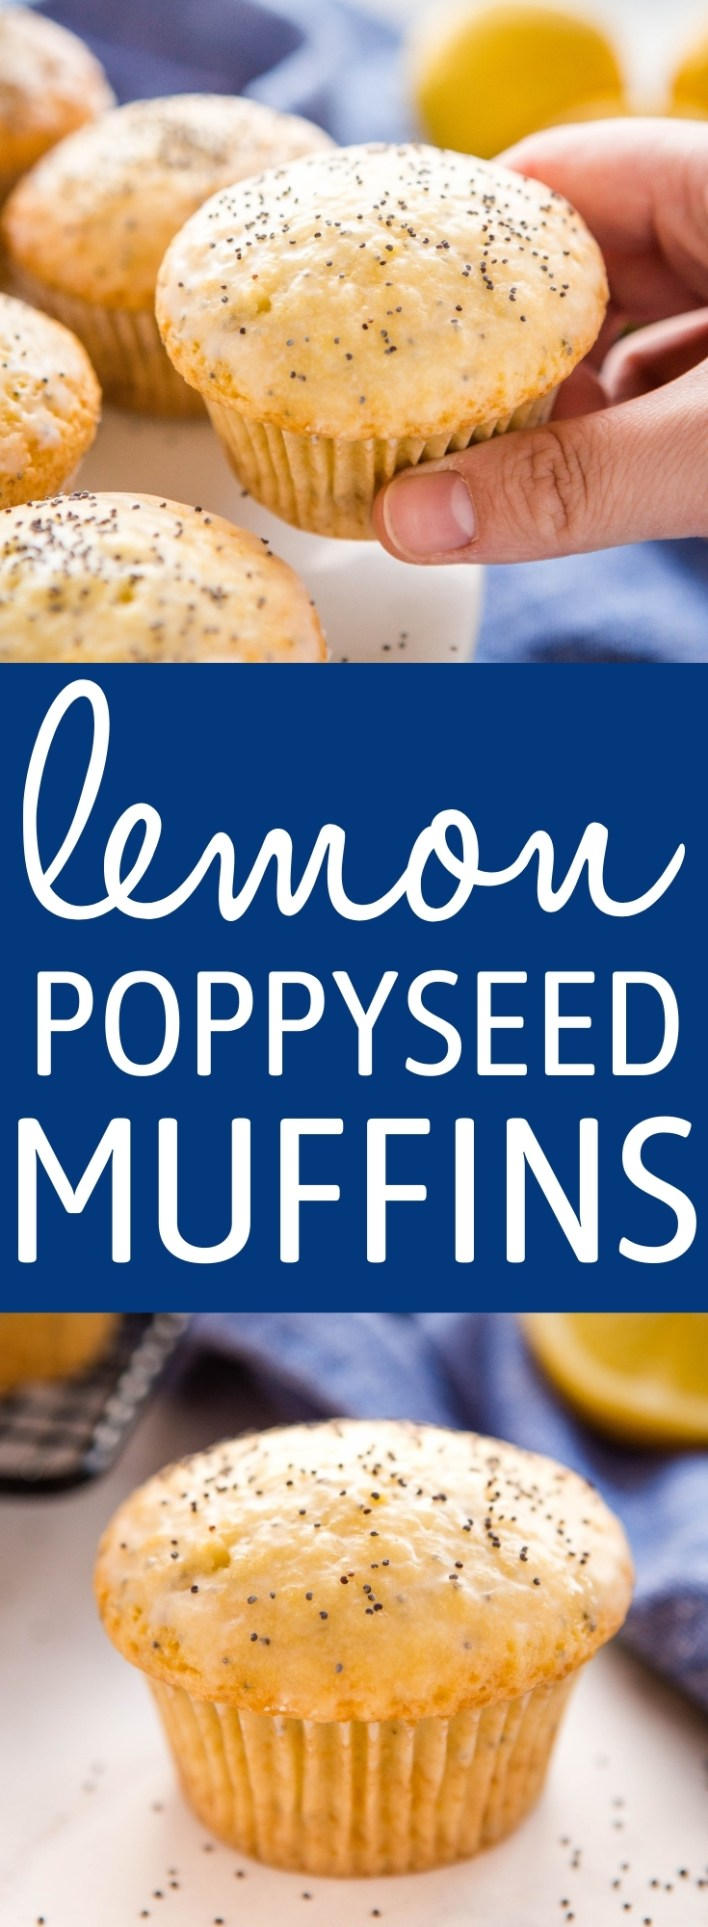 These Lemon Poppy Seed Muffins are the perfect sweet treat for breakfast, brunch or snack. Make this recipe for moist, tender muffins packed with fresh lemon and poppy seeds! Recipe from thebusybaker.ca! #recipe #lemon #poppyseed #muffins #cake #baking #fruit #citrus #homemade #muffinrecipe via @busybakerblog